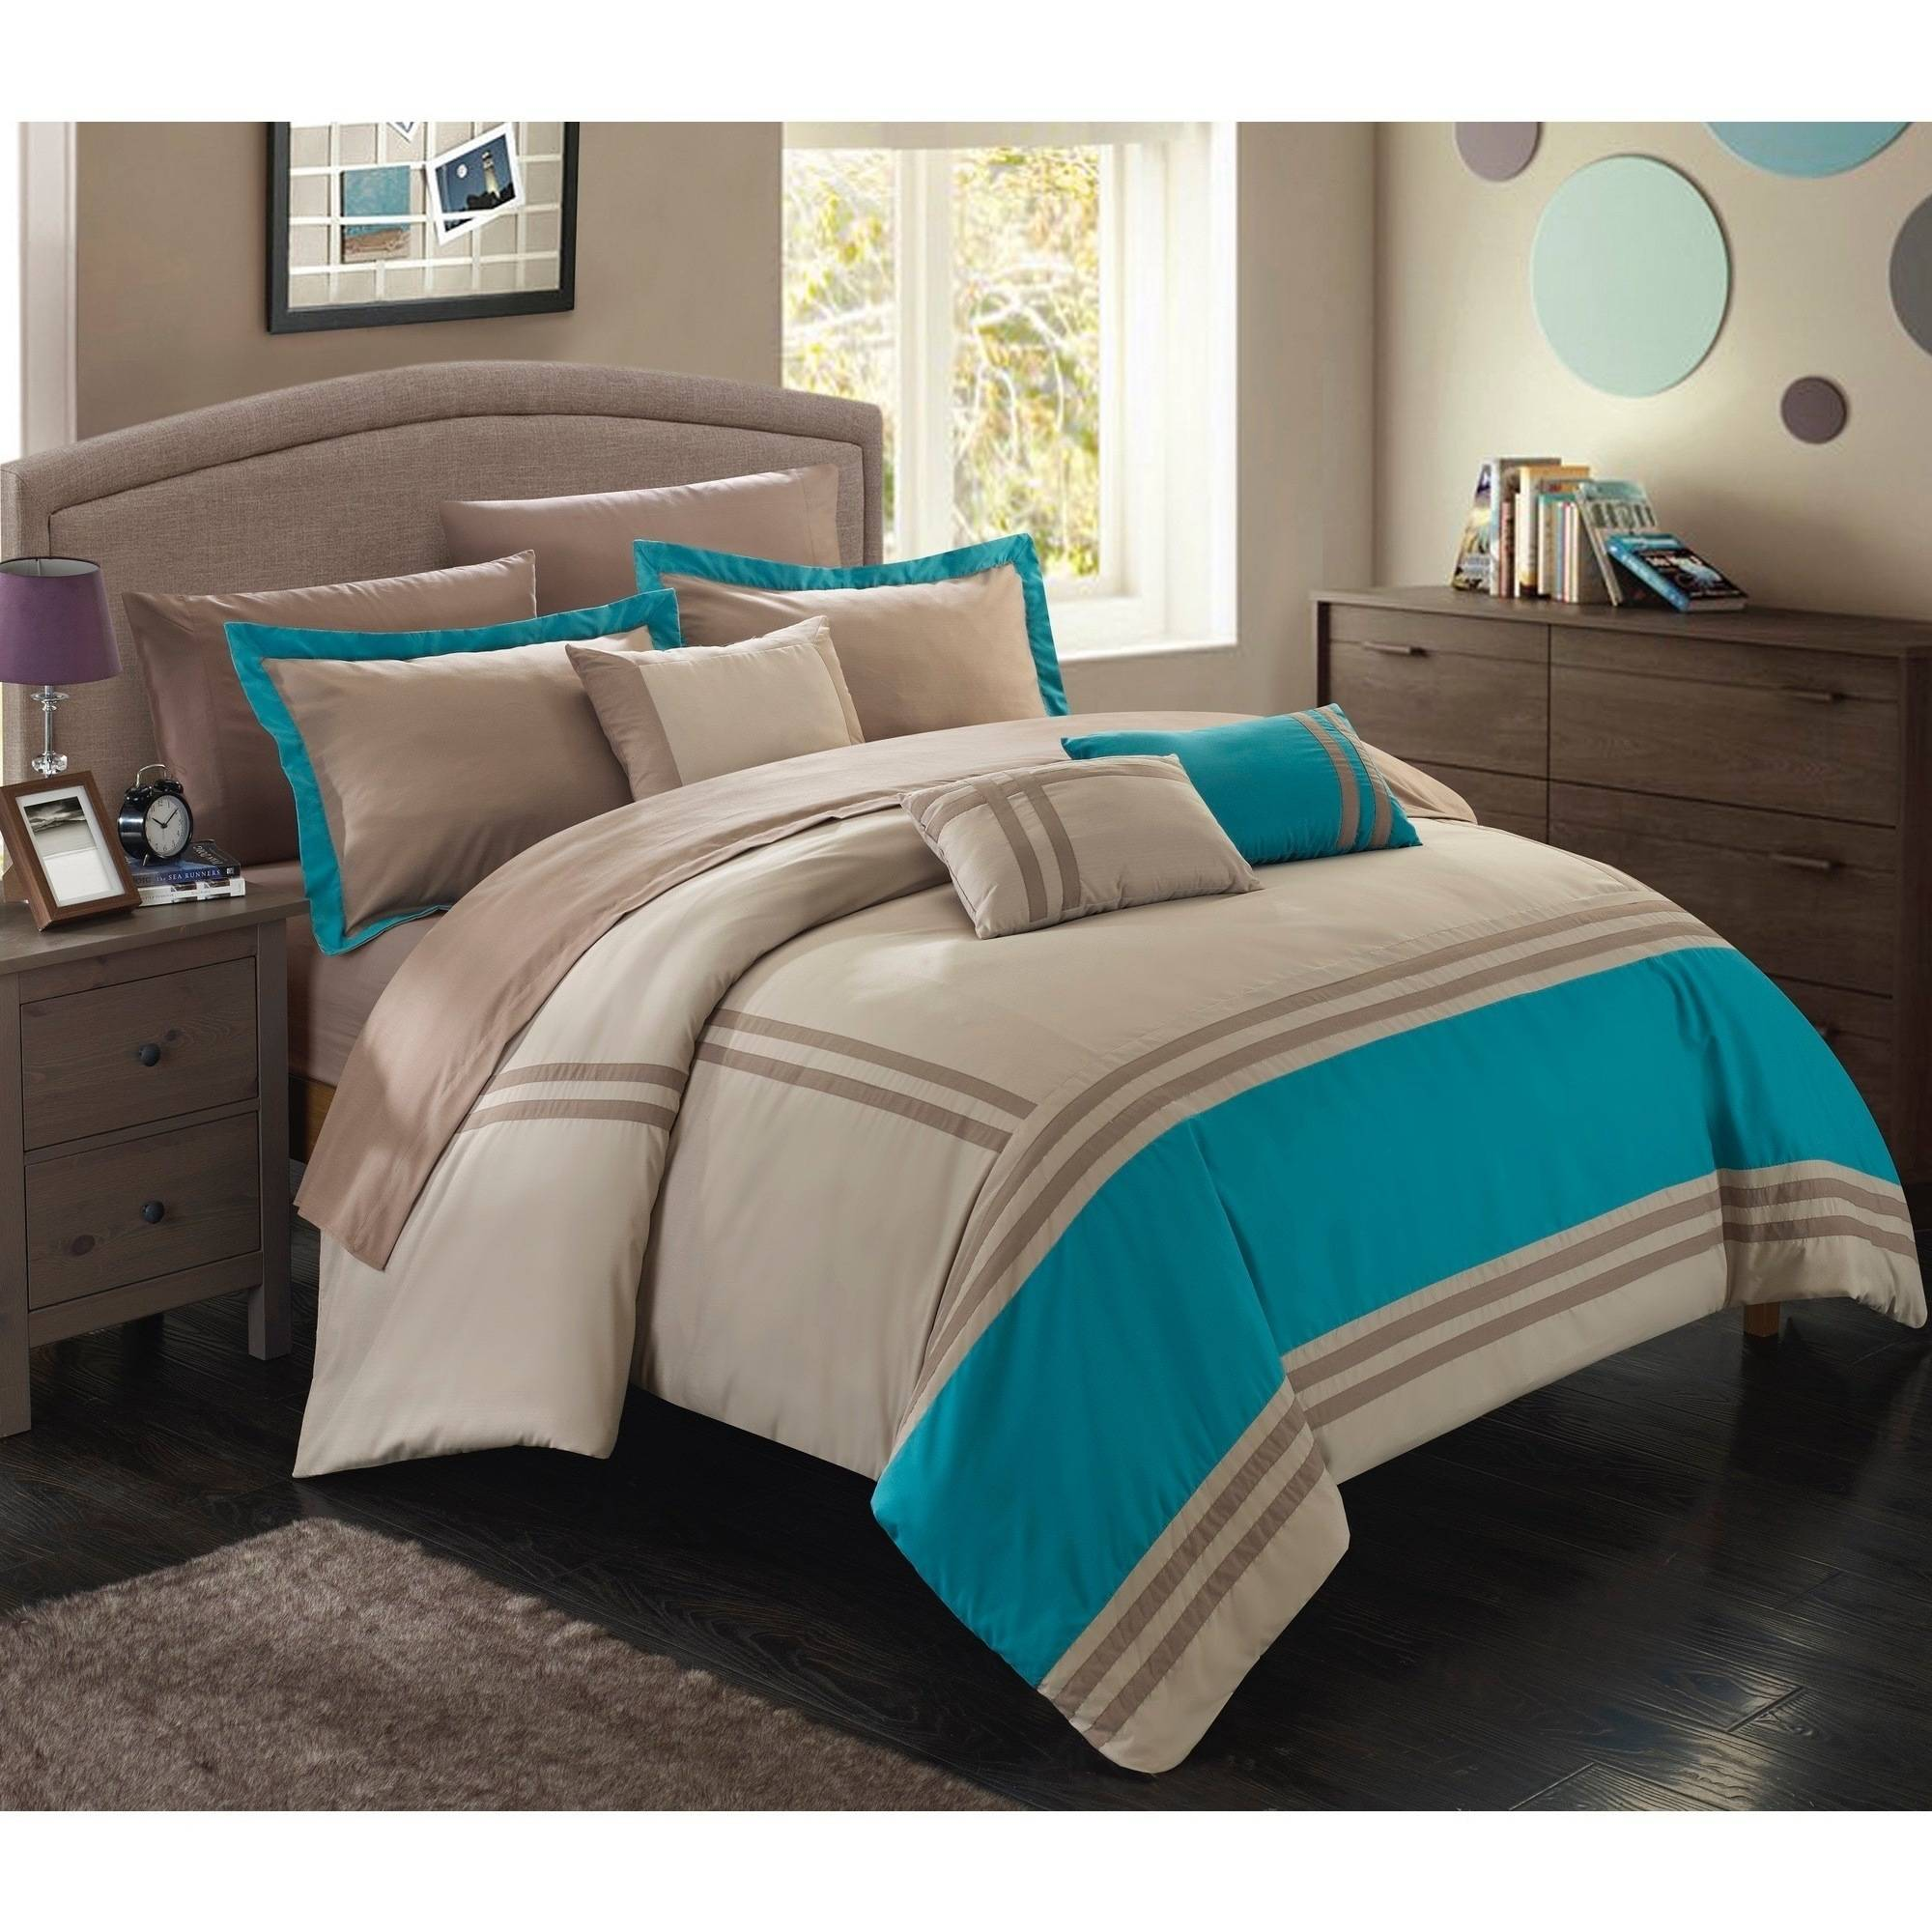 collections piquant and bbkkjk sets large queen size oversized king uk comforter at bedding oversizedking quilts beauteous bedspreads of